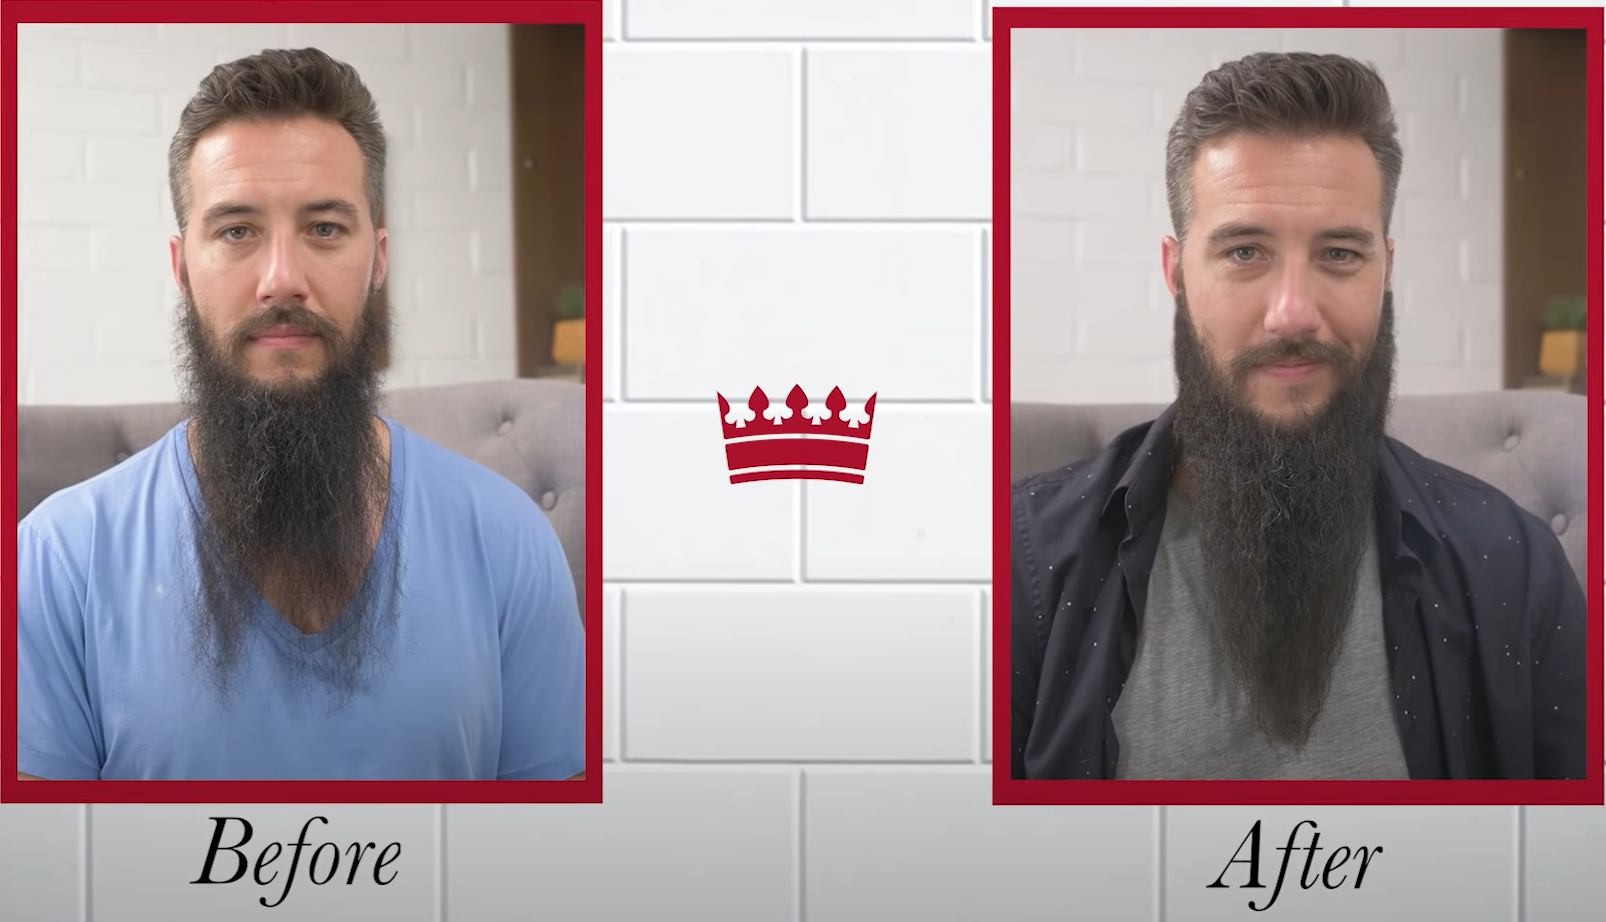 Patchy beard before and after comparison